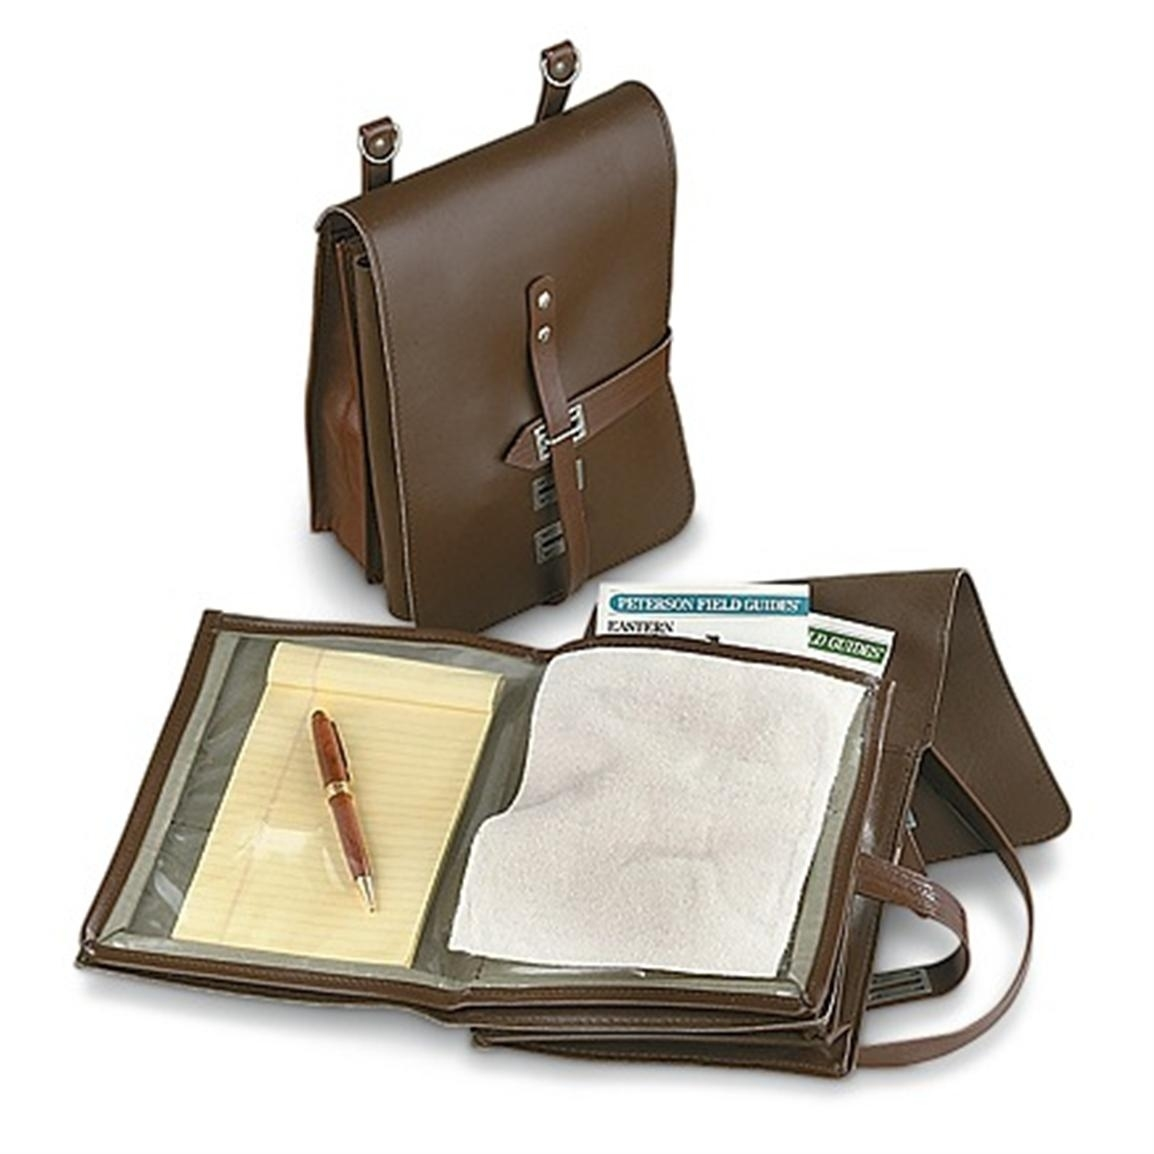 6 New East German Military Map Cases, Brown - 192154, Map Cases At with East German Map Bag